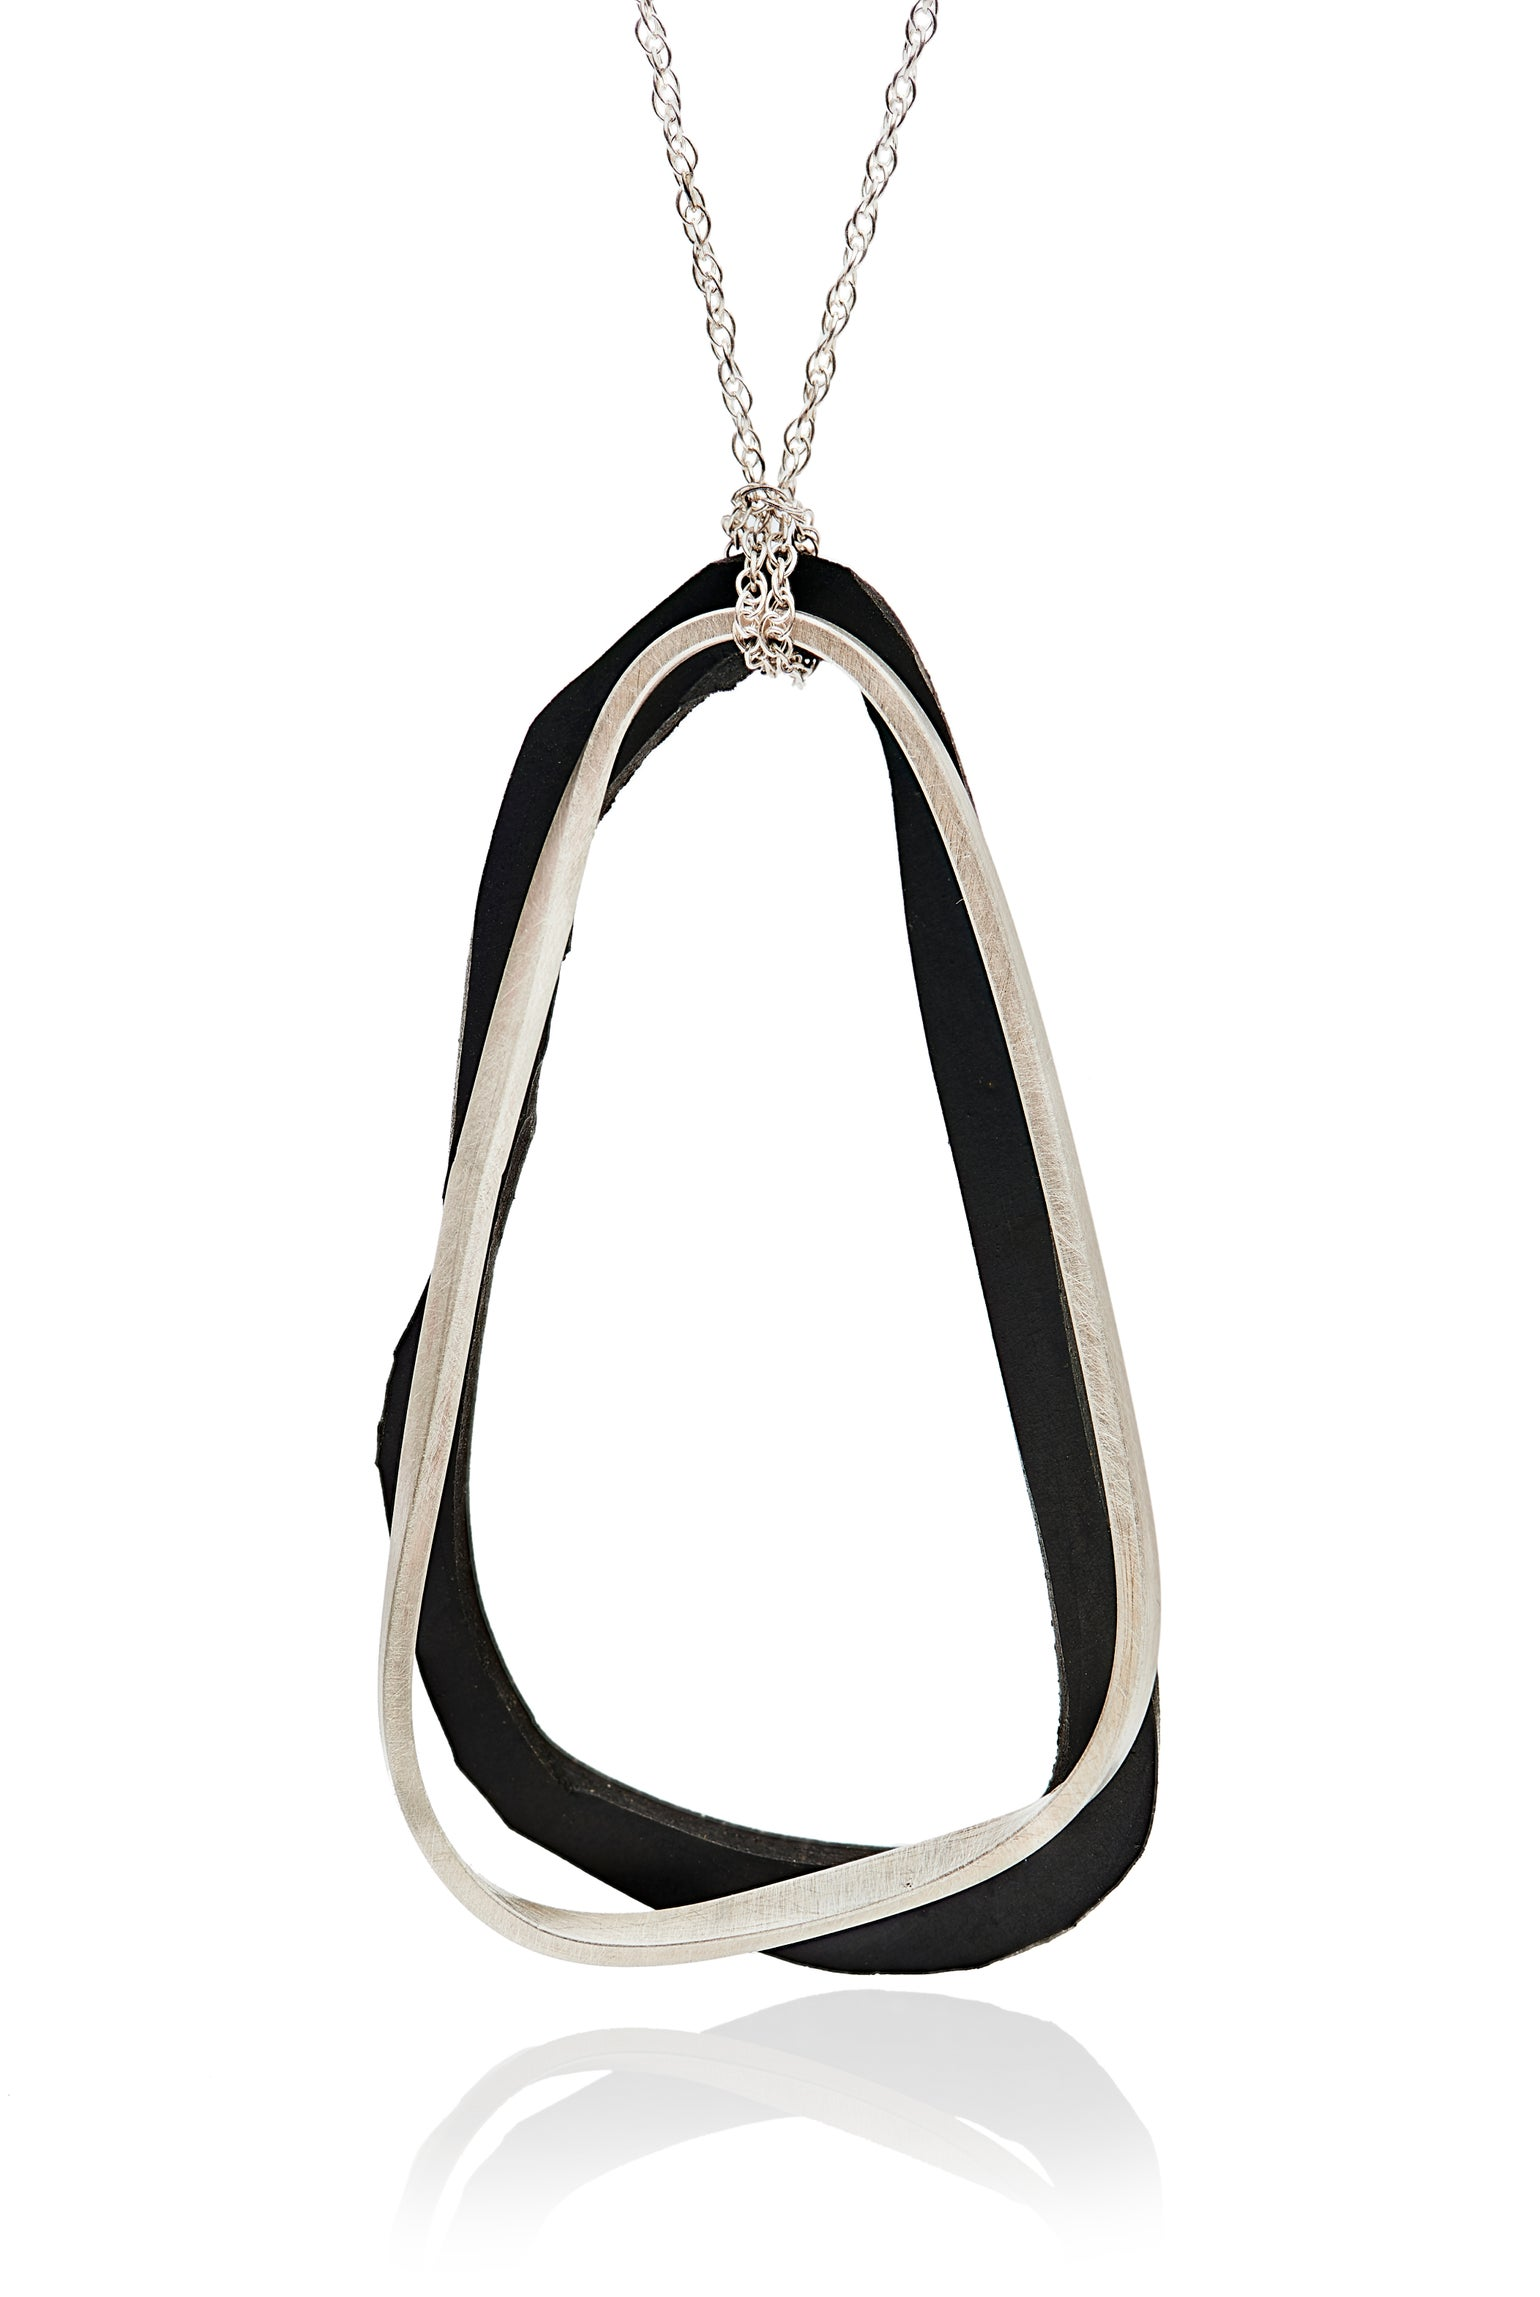 Image of Me and my shadow silver and neoprene necklace